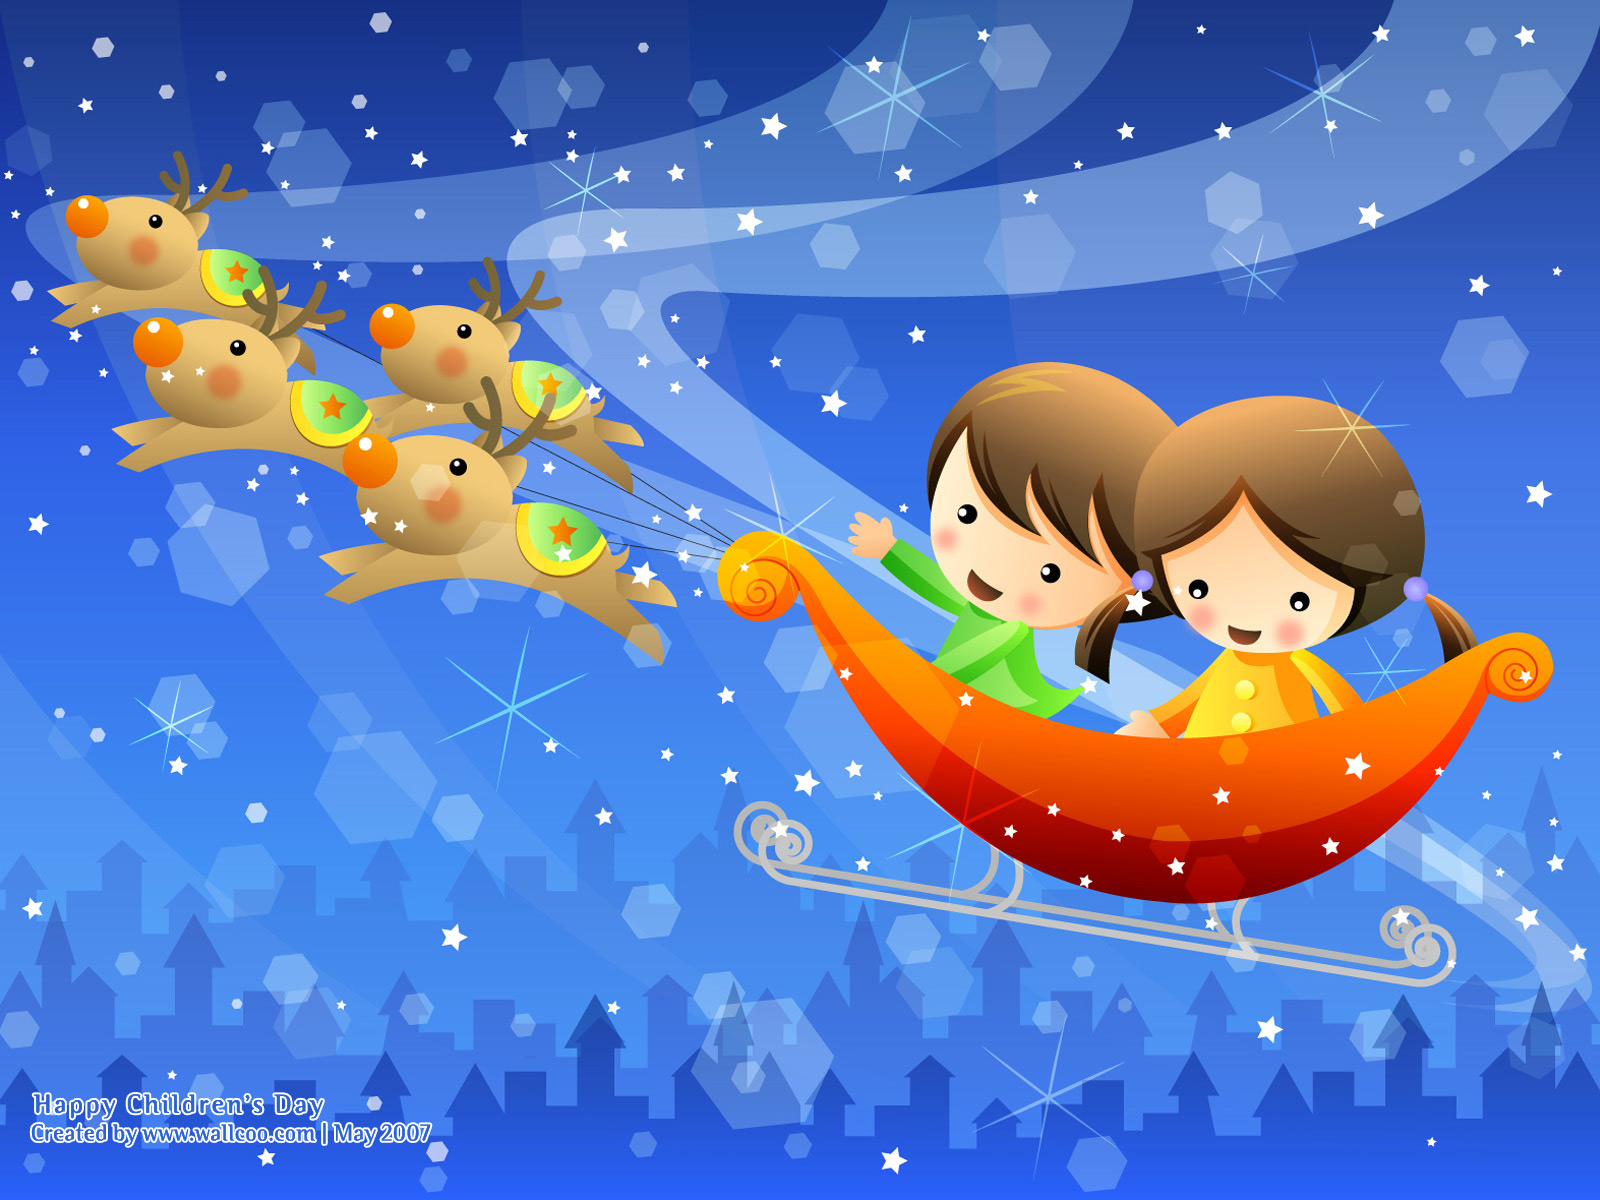 Colourful Illustrations for Childrens Day 16001200 NO10 Wallpaper 1600x1200